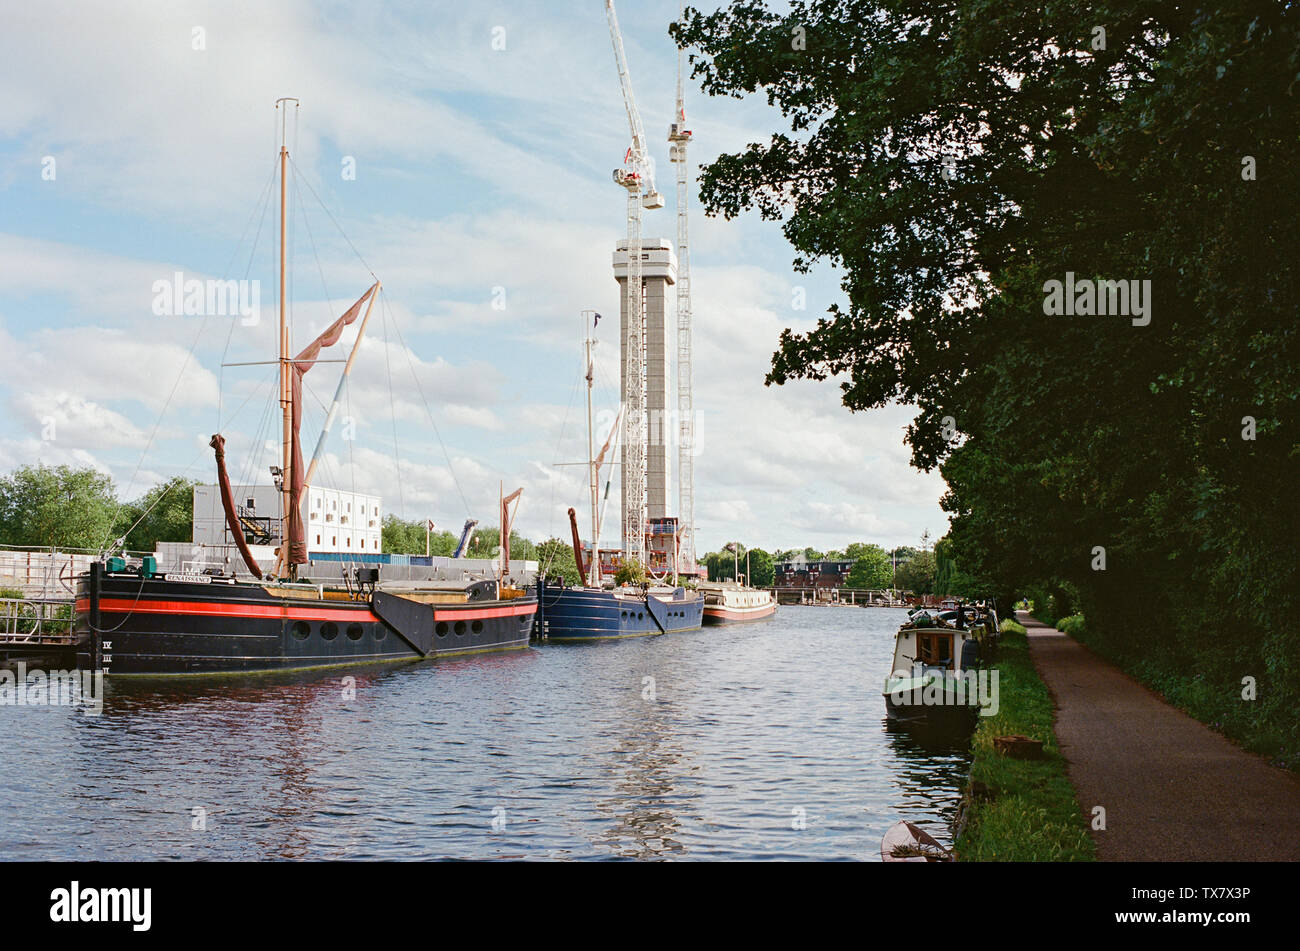 The River Lea Navigation at Tottenham Hale, London UK,  with moored river boats and the new Hale Wharf development under construction - Stock Image